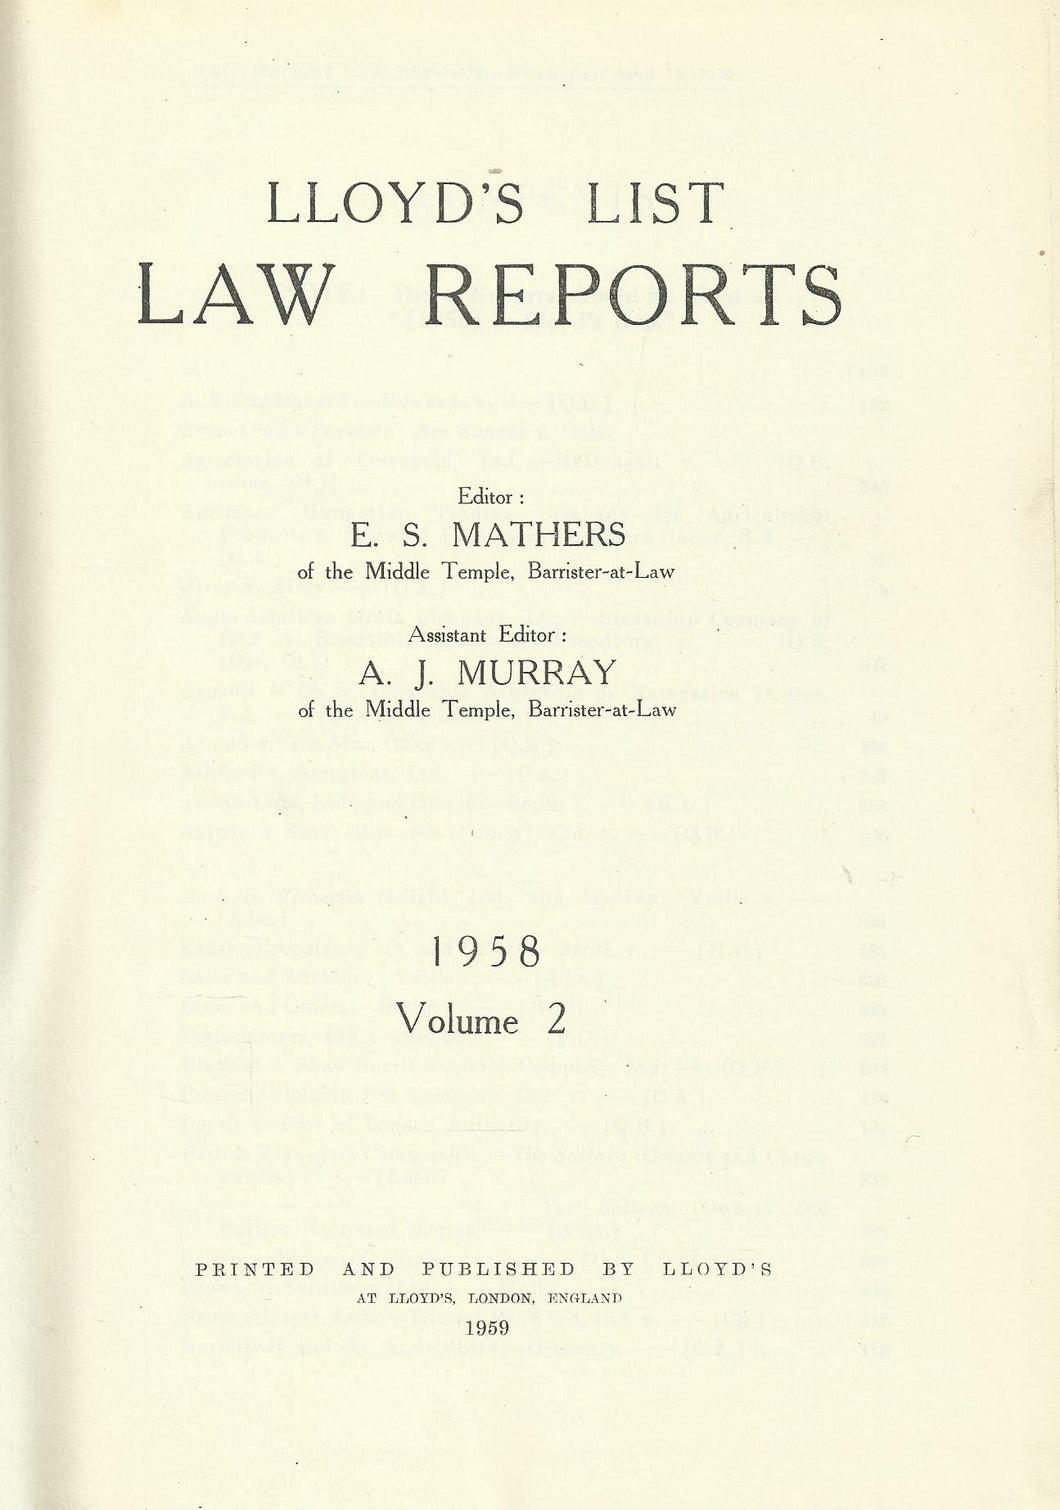 Lloyd's List Law Reports - 1958, Volume 2